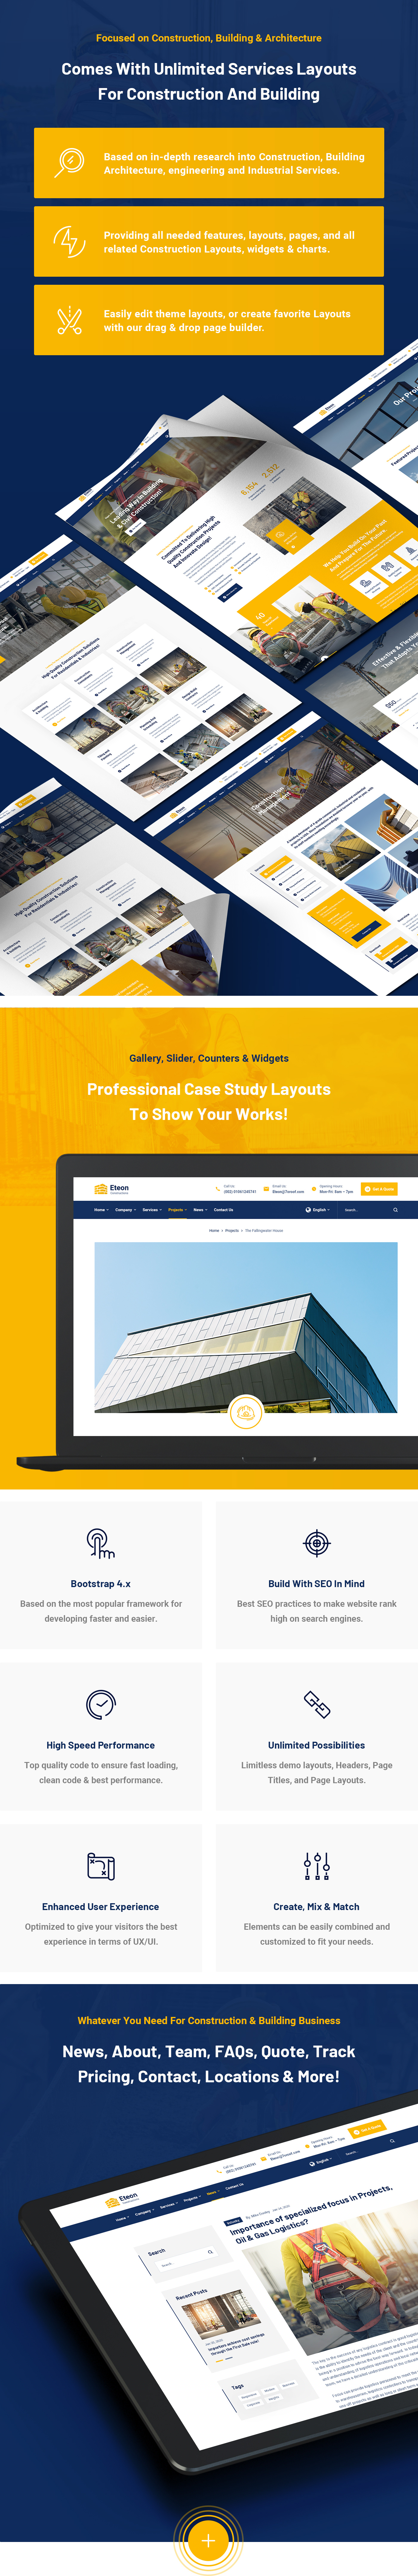 Eteon - Construction and Building HTML5 Template - 7